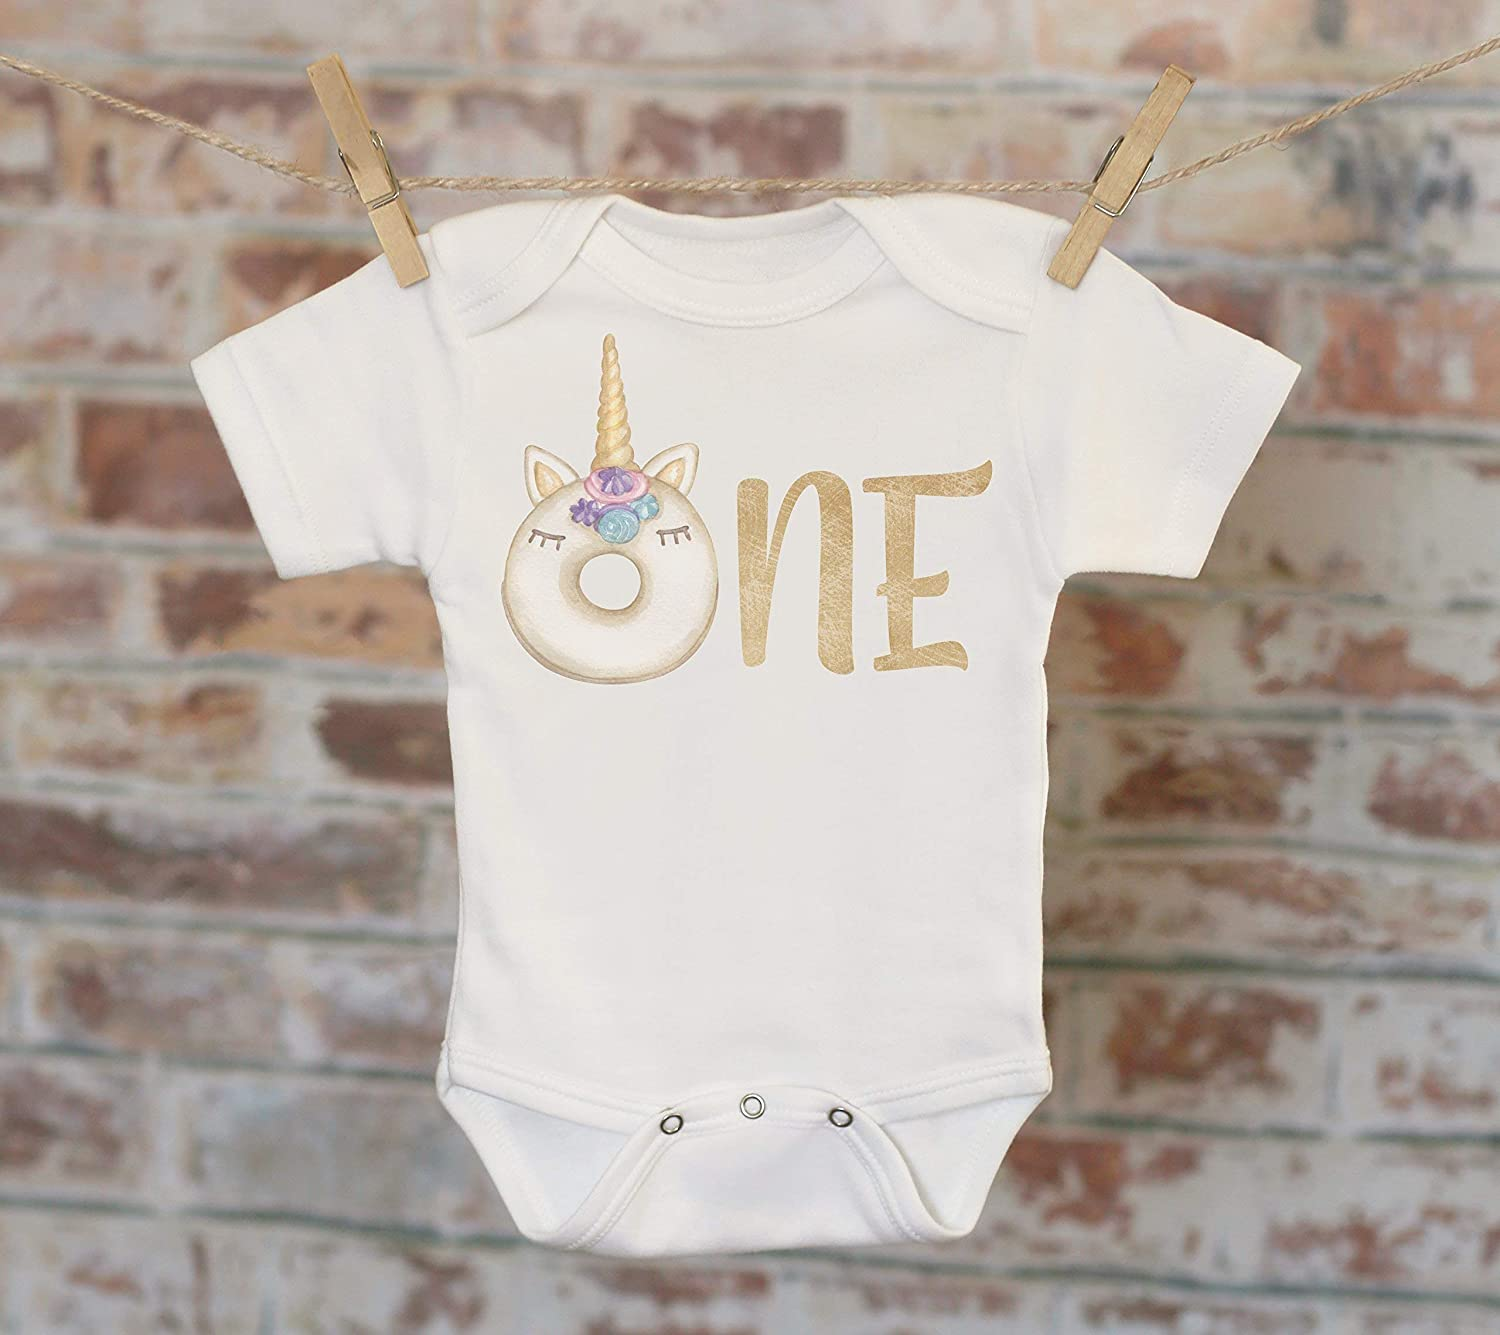 One Donut Unicorn Onesie®, First Birthday Onesie, Customized Onesie, Cute Onesie, Boho Baby Onesie, Woodland Style Onesie One Donut Unicorn Onesie®